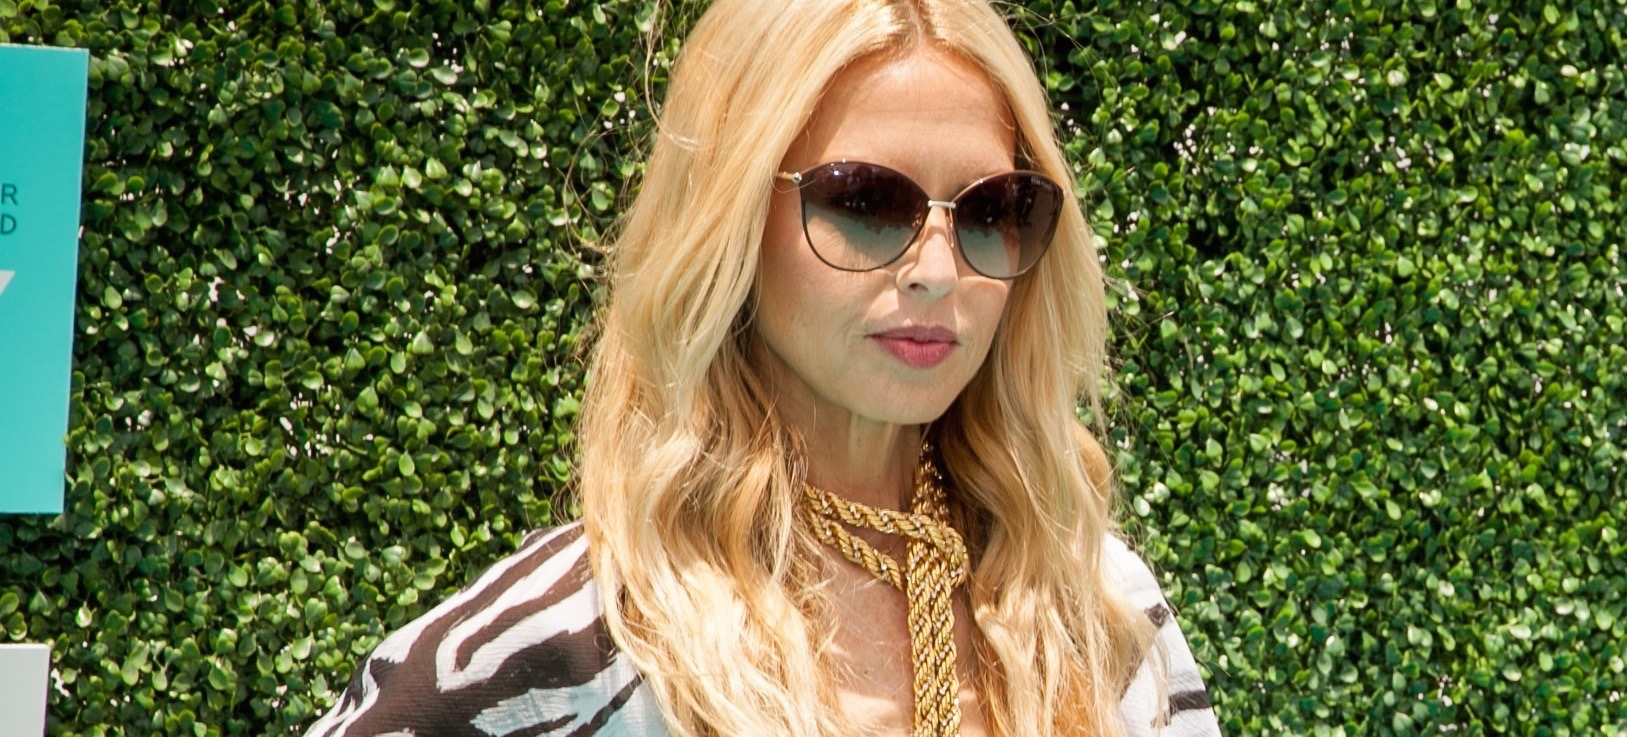 Rachel Zoe's Solution To Your Summer Skin Woes